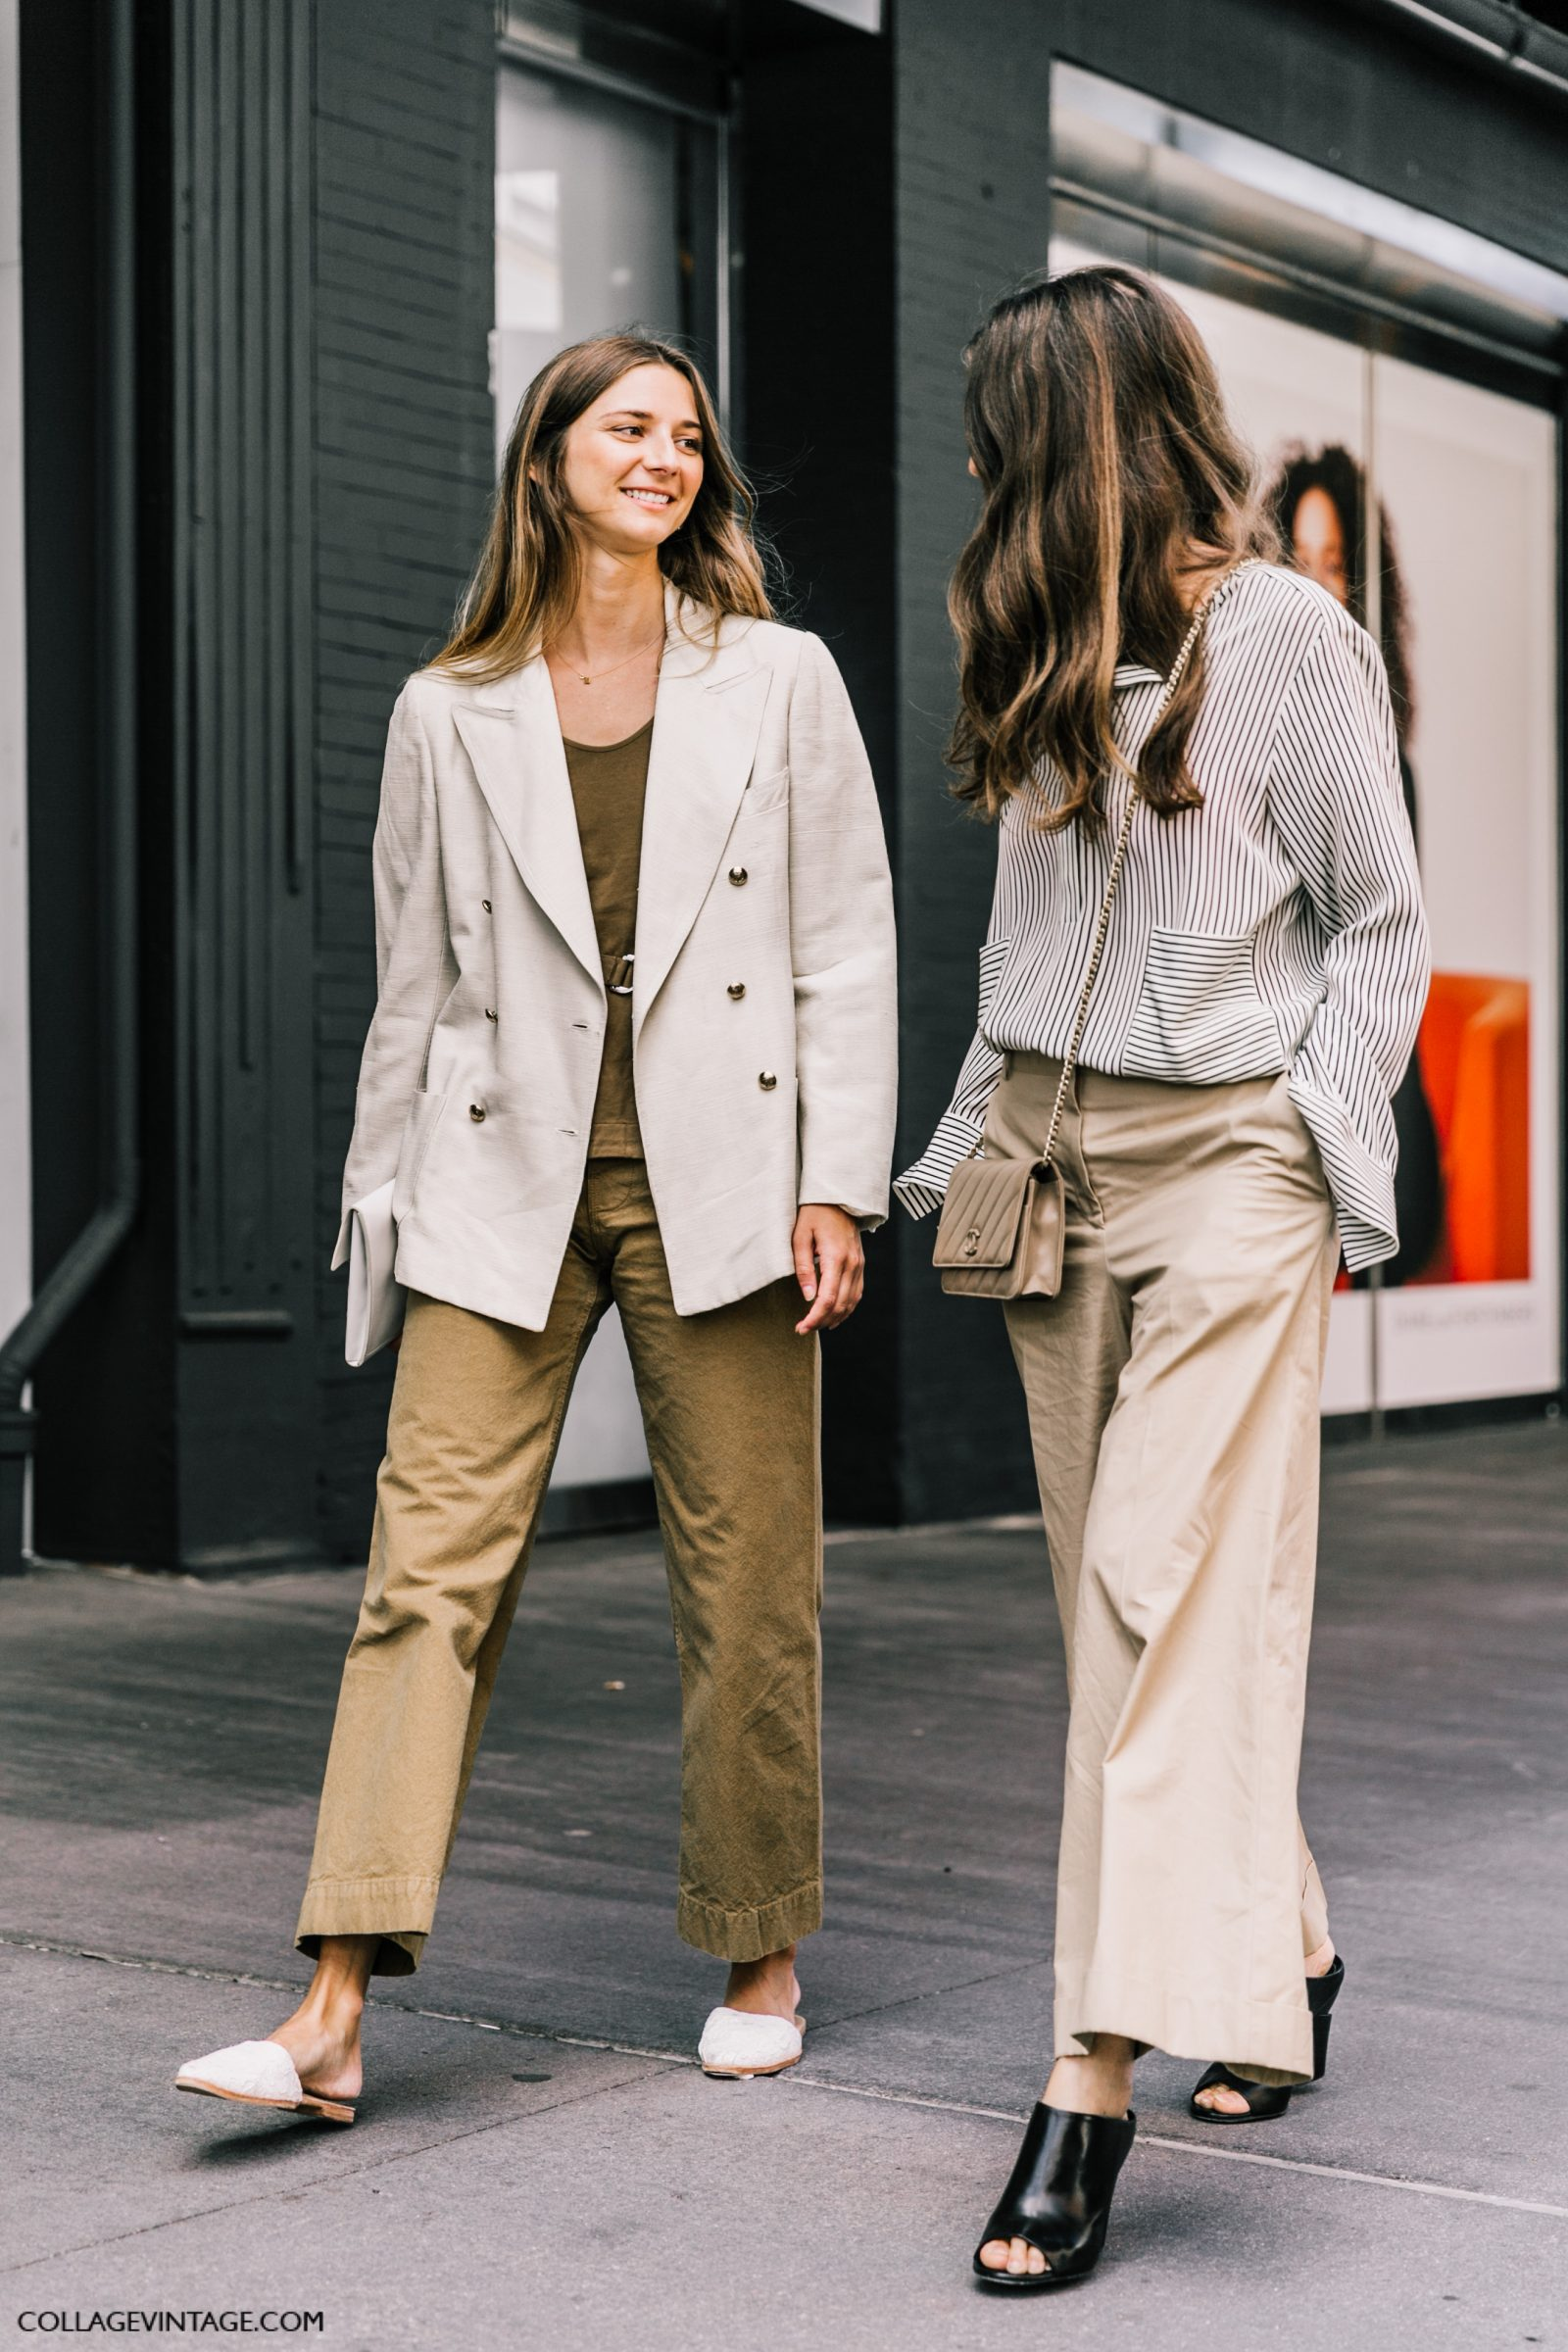 nyfw-new_york_fashion_week_ss17-street_style-outfits-collage_vintage-vintage-phillip_lim-the-row-proenza_schouler-rossie_aussolin-143